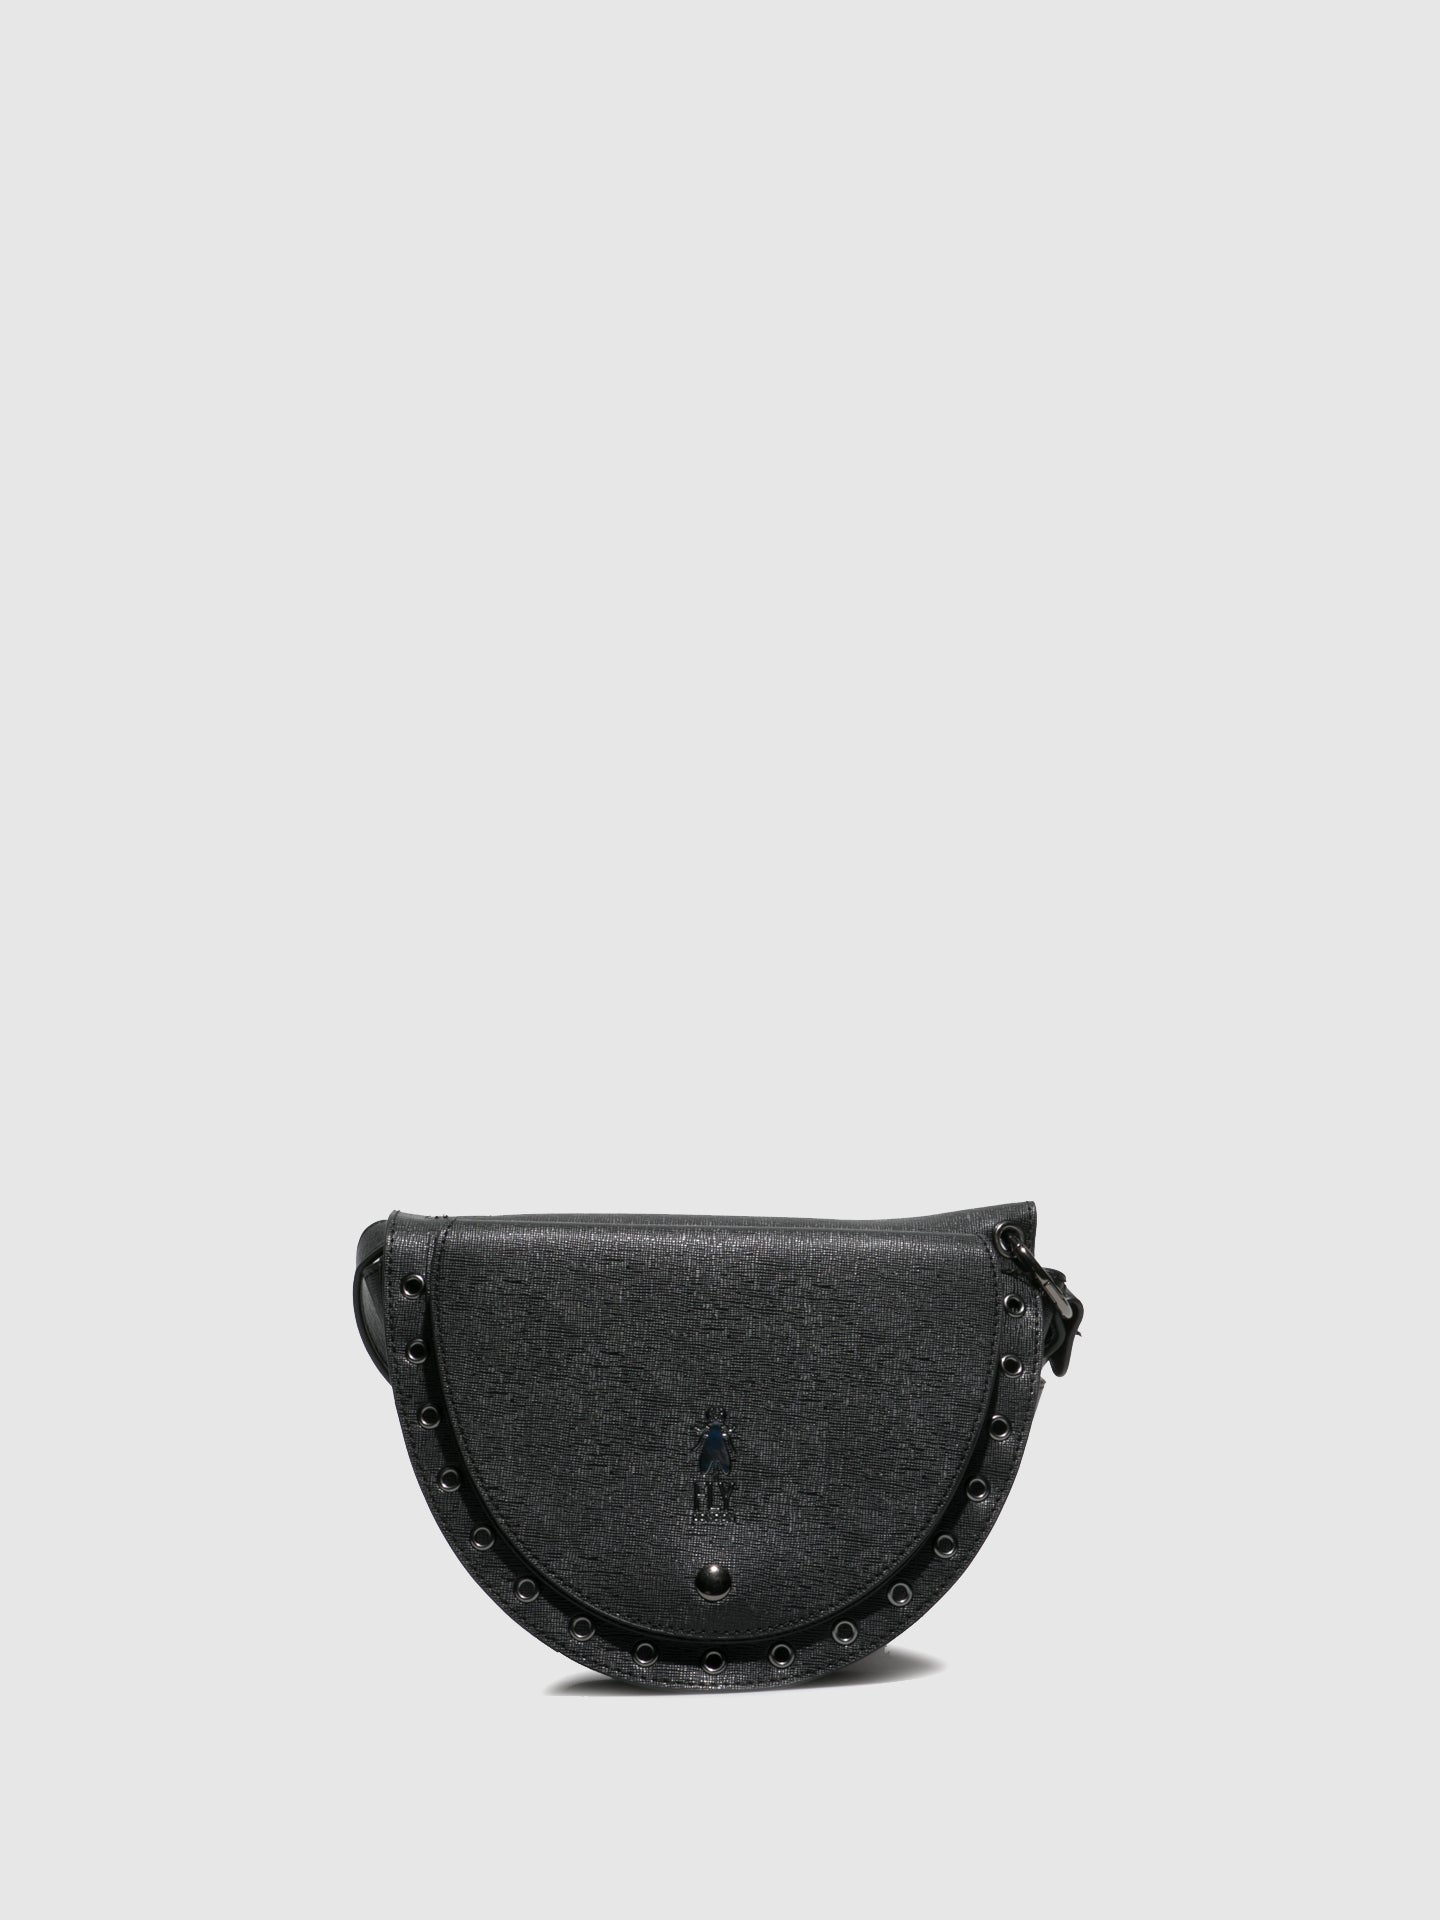 Fly London Shoulder Bags ANIC695FLY DOYLE BLACK